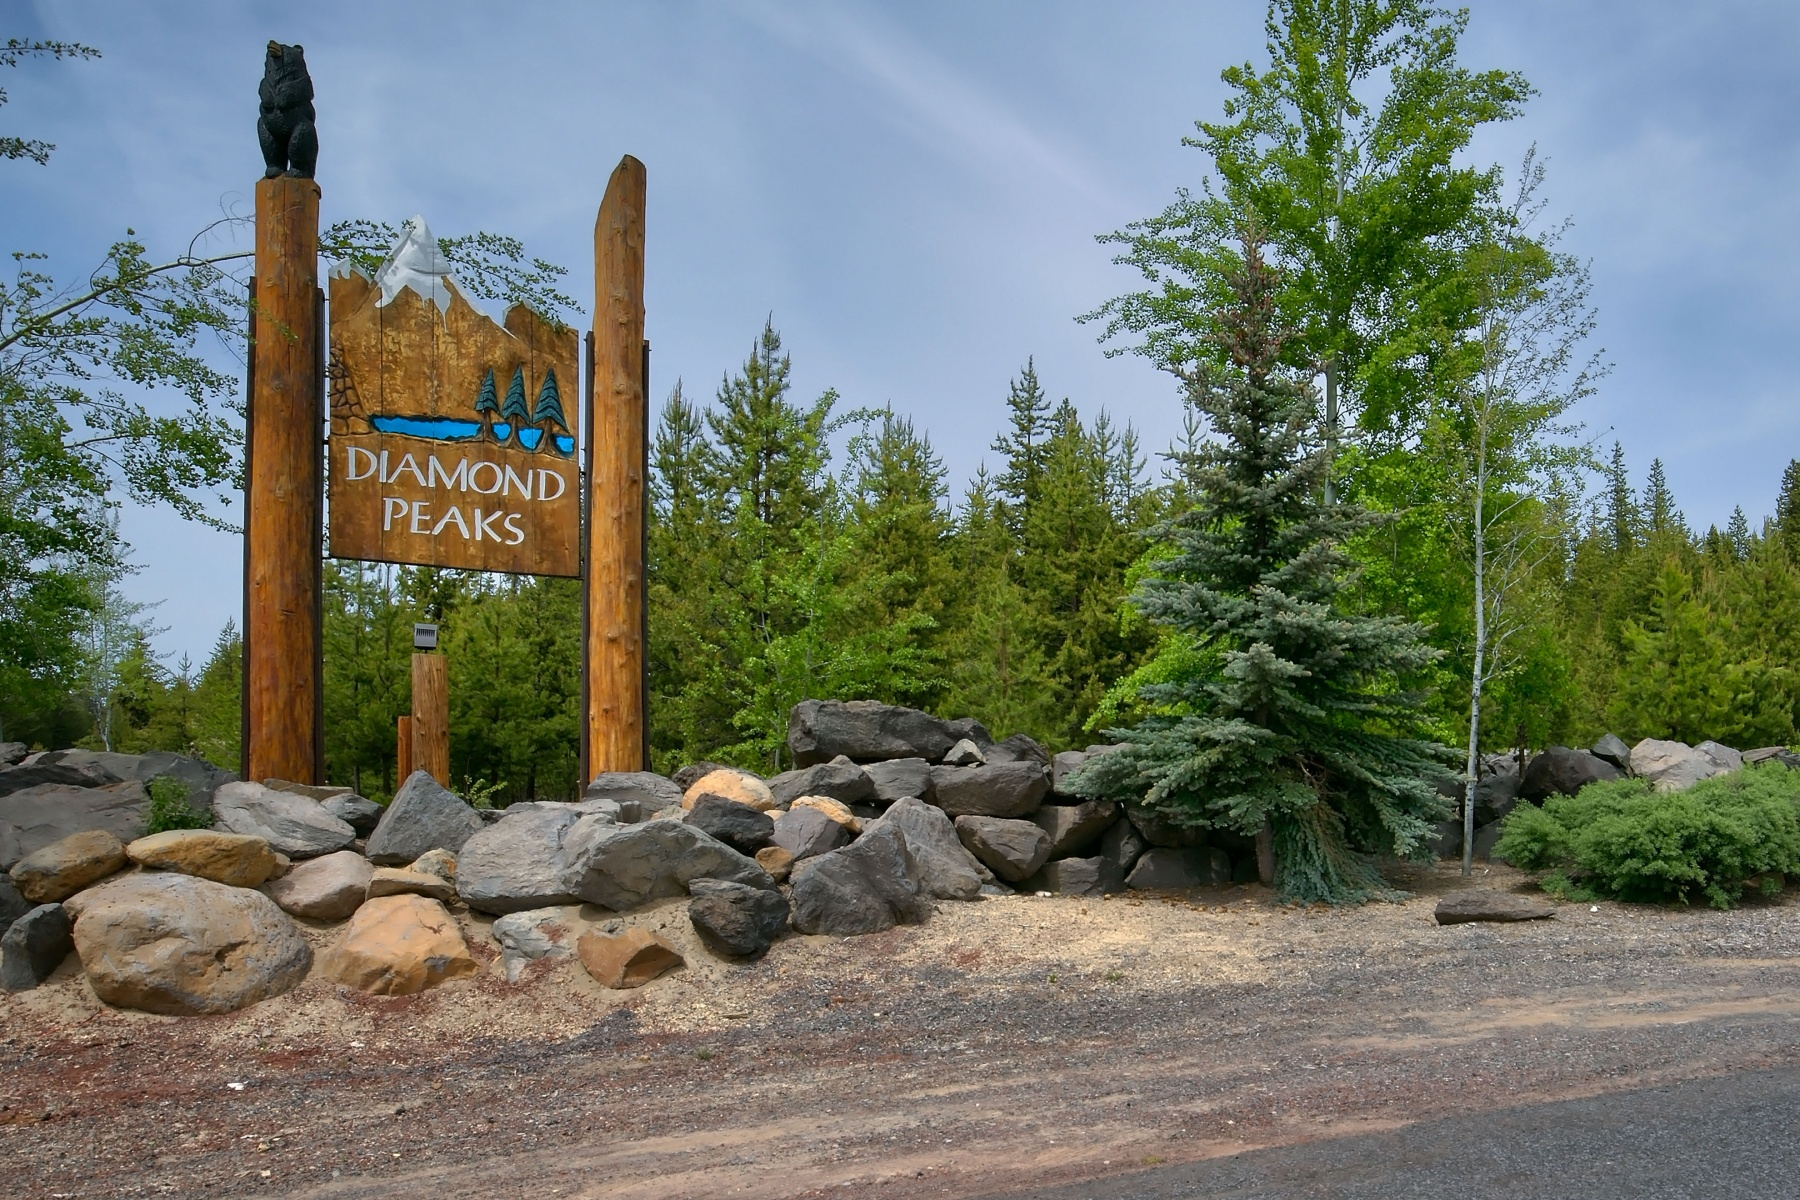 Single Family Home for Sale at Diamond Peaks 142016 Blue Sky Way Crescent, Oregon, 97733 United States